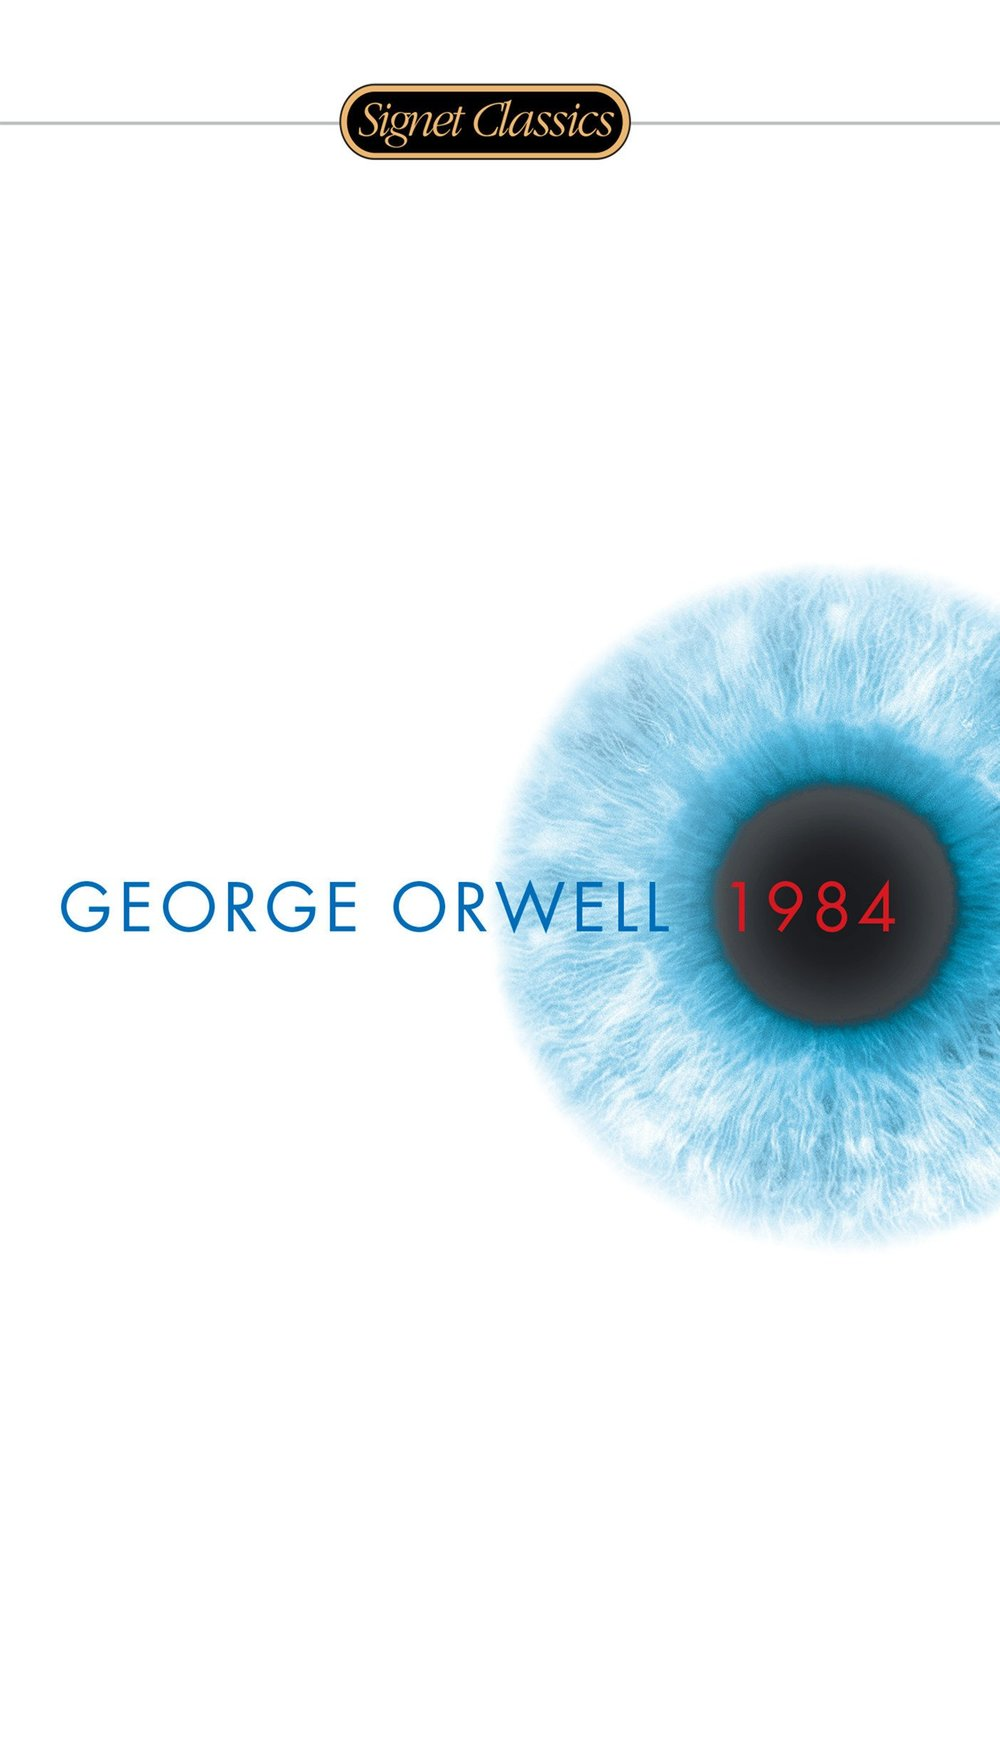 The most famous dystopian novel… - The best dystopian science fiction novels use the future to examine the problems of the present. In his book, 1984, George Orwell examines the present threat of communism by painting a pessimistic future that includes censorship, perpetual war, unbridled nationalism, and secret government surveillance. Since its publication in 1949, many of novel's concerns were realized in both communist and capitalist societies, making 1984 just as relevant today as it was 70 years ago.